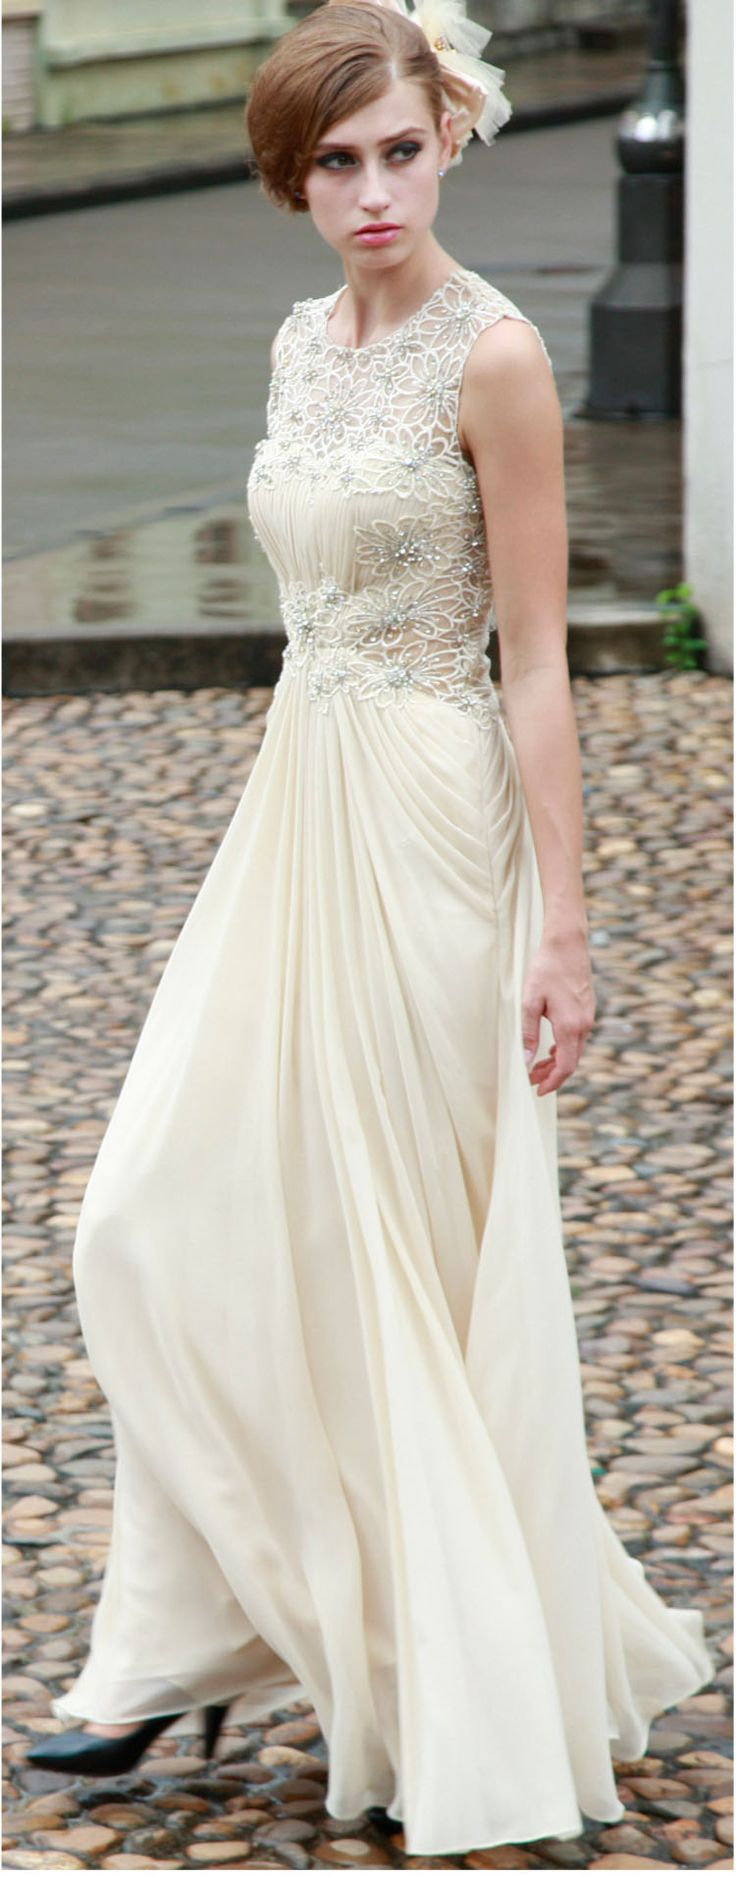 $140 The new spring and summer brides/ bridesmaid dress toast clothing lace embroidery evening gown wedding dress-ZZKKO